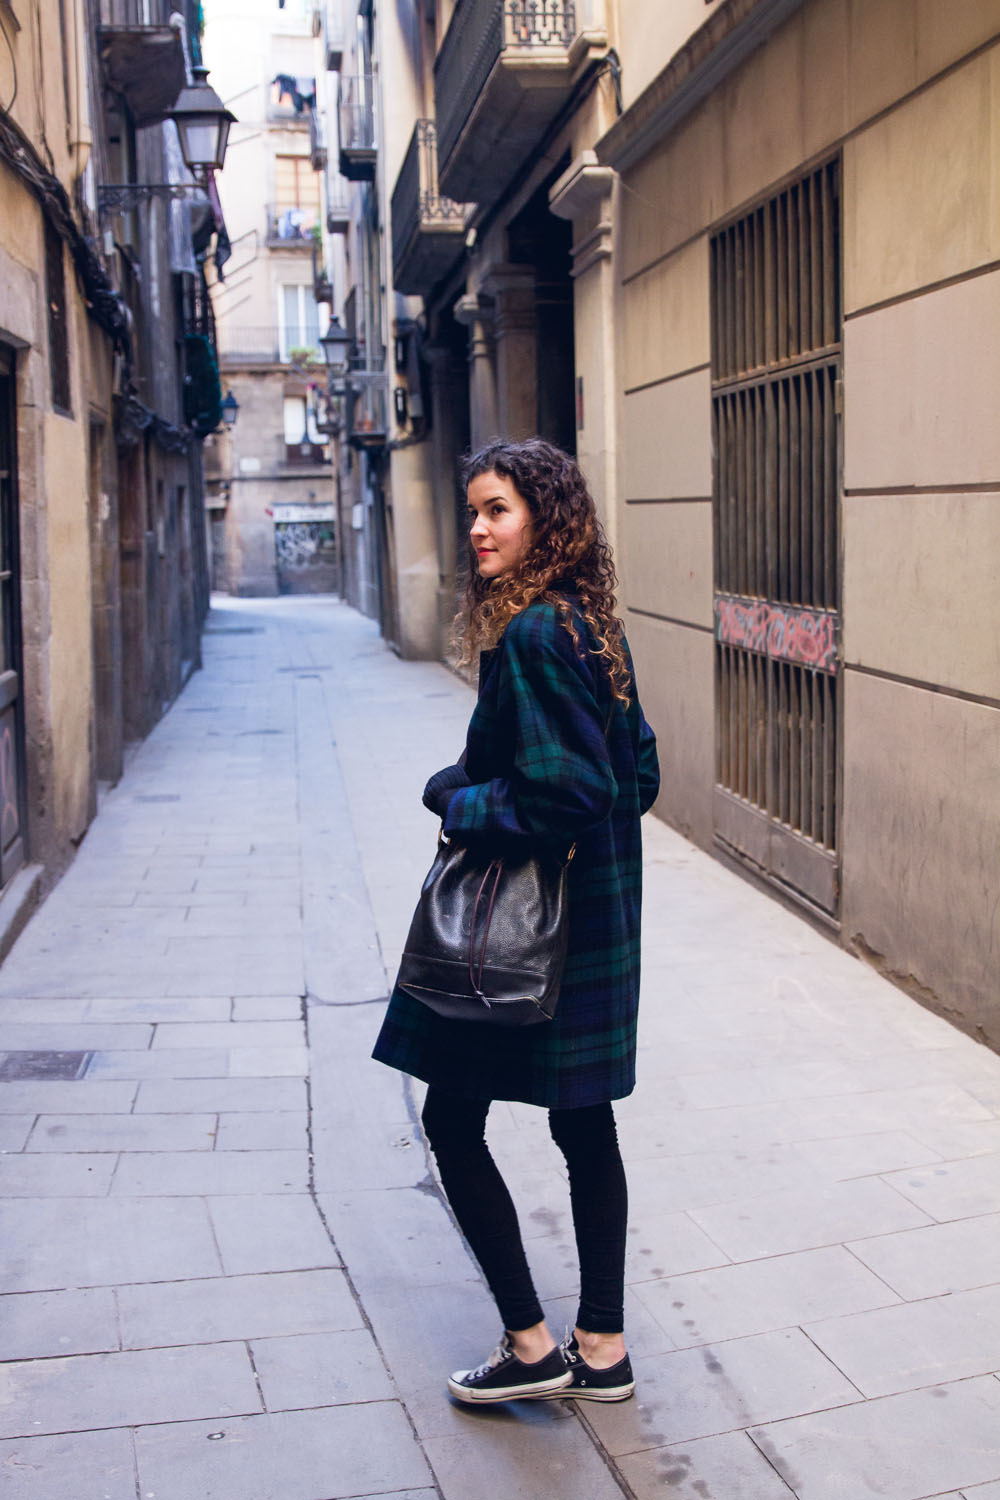 barcelona outfit 2 (8 of 8)